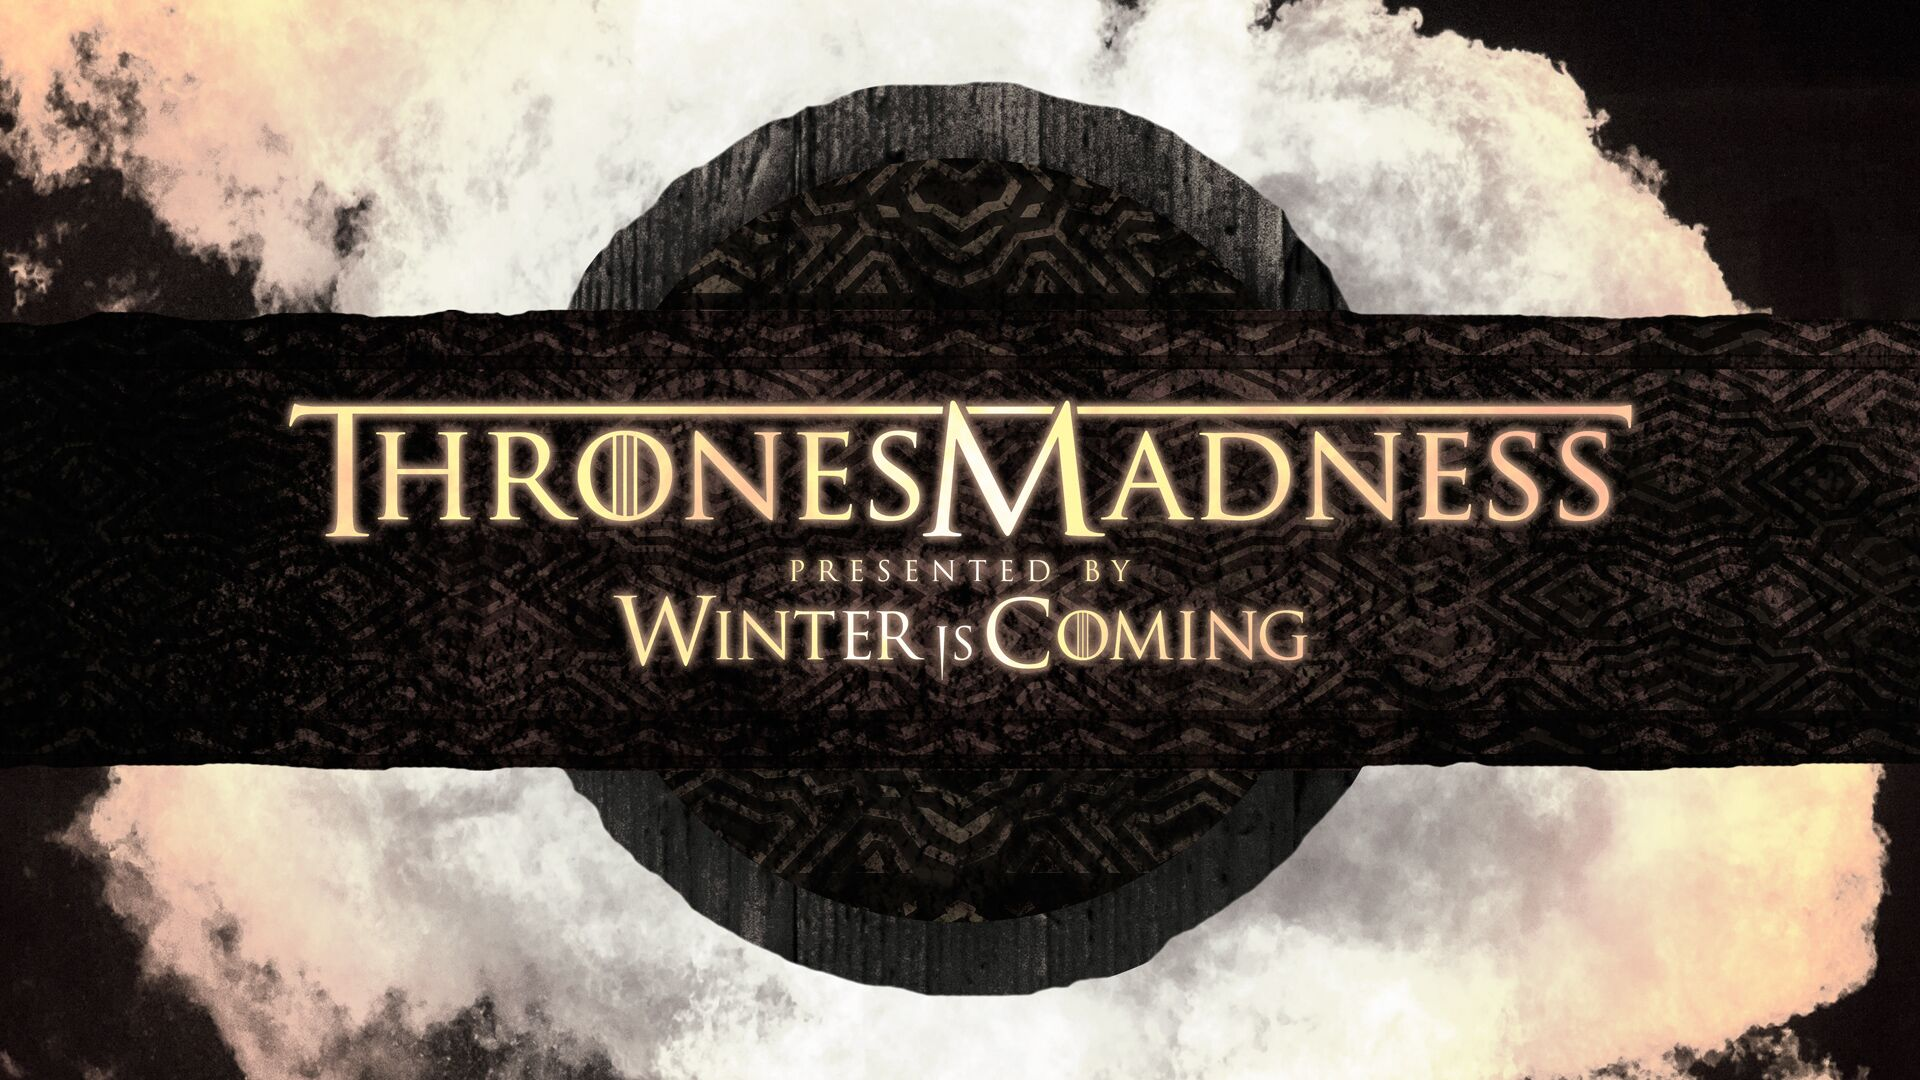 Game of Thrones March Madness Championship: Vote for your favorite character